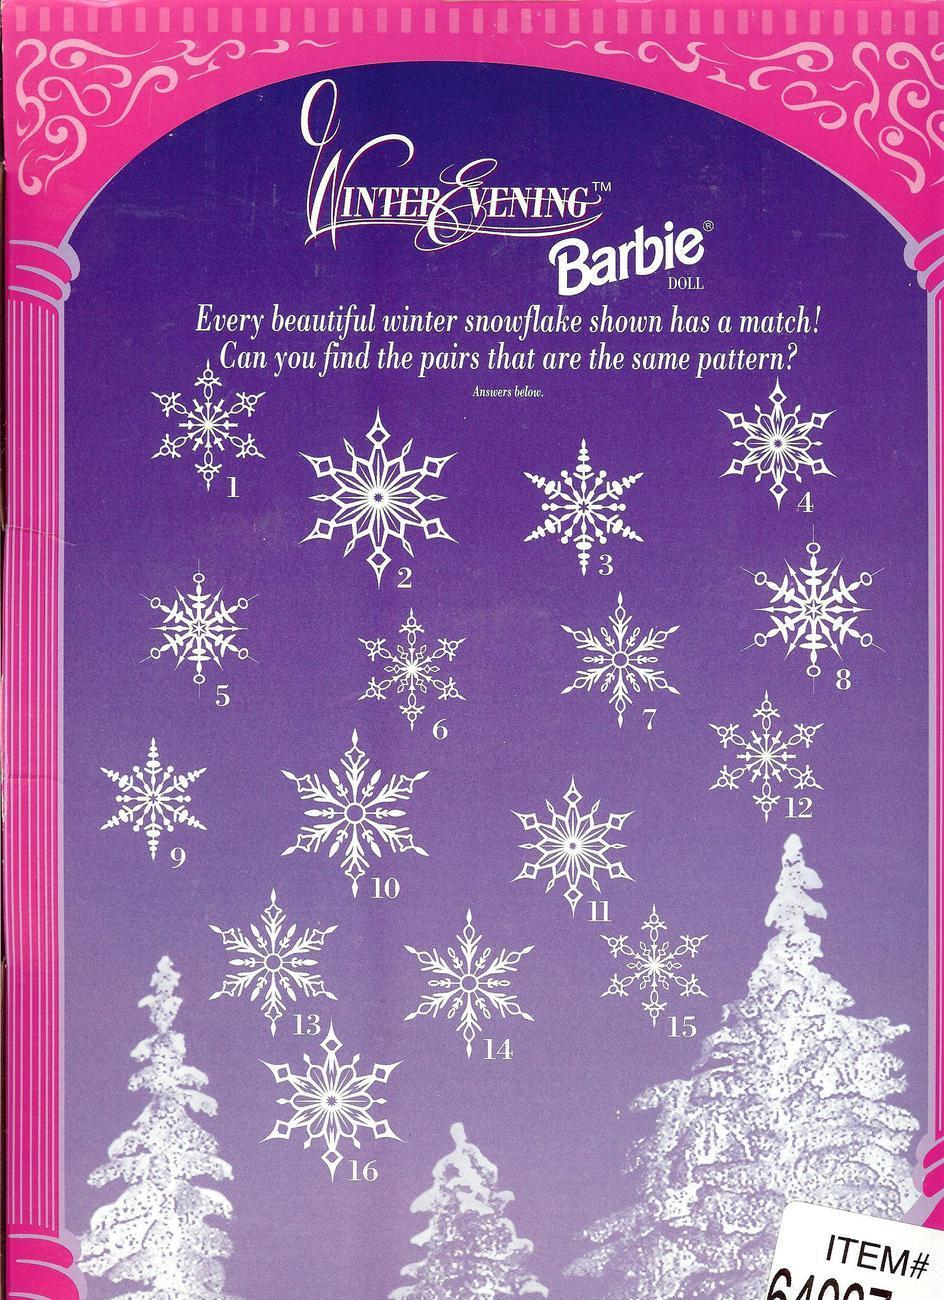 Barbie, Winter Evening Gown, Special Edition, Original 1998, Collectible New.